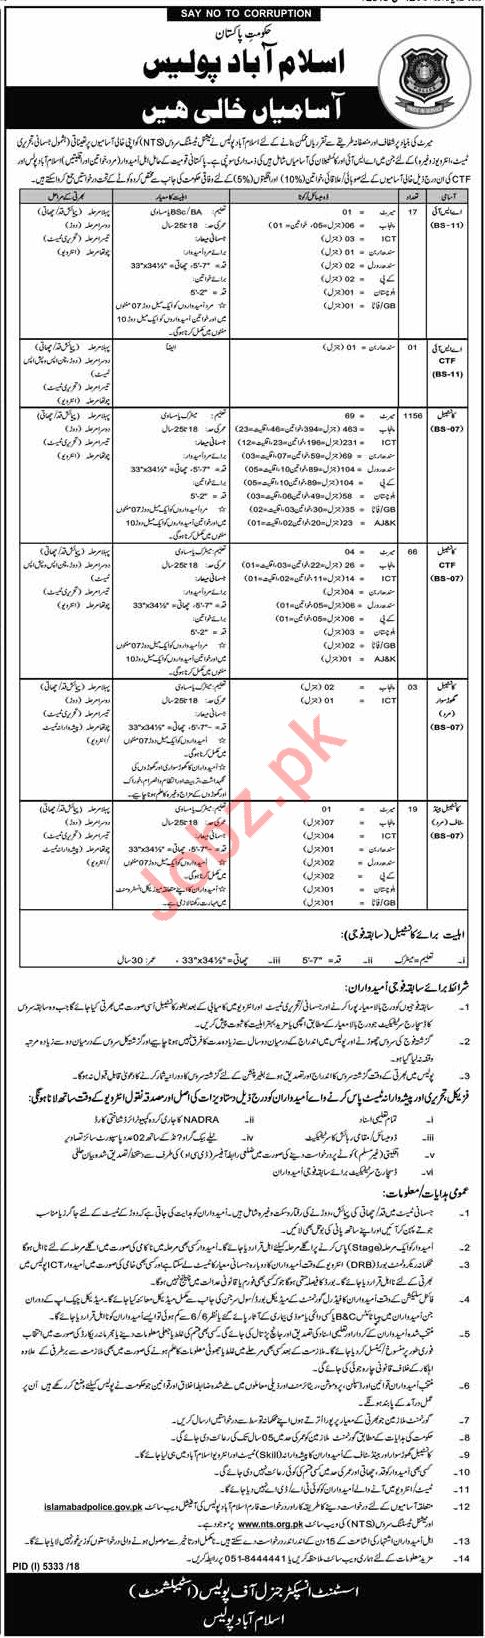 Islamabad Capital Territory Police ASI Jobs 2019 Via NTS